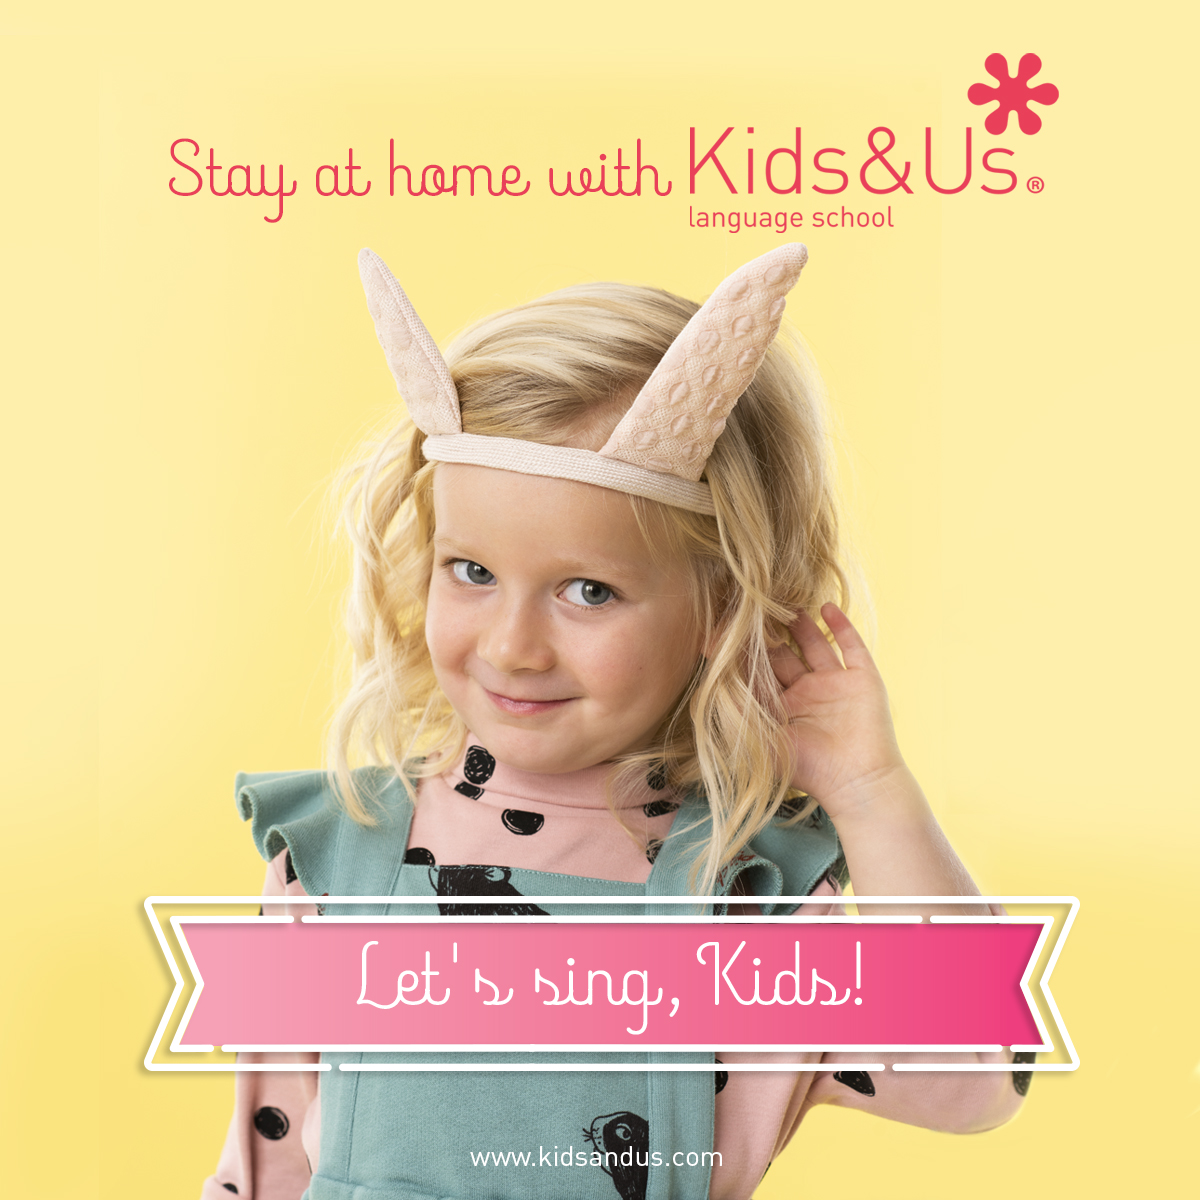 #STAYATHOME WITH KIDS&US FOR KIDS!